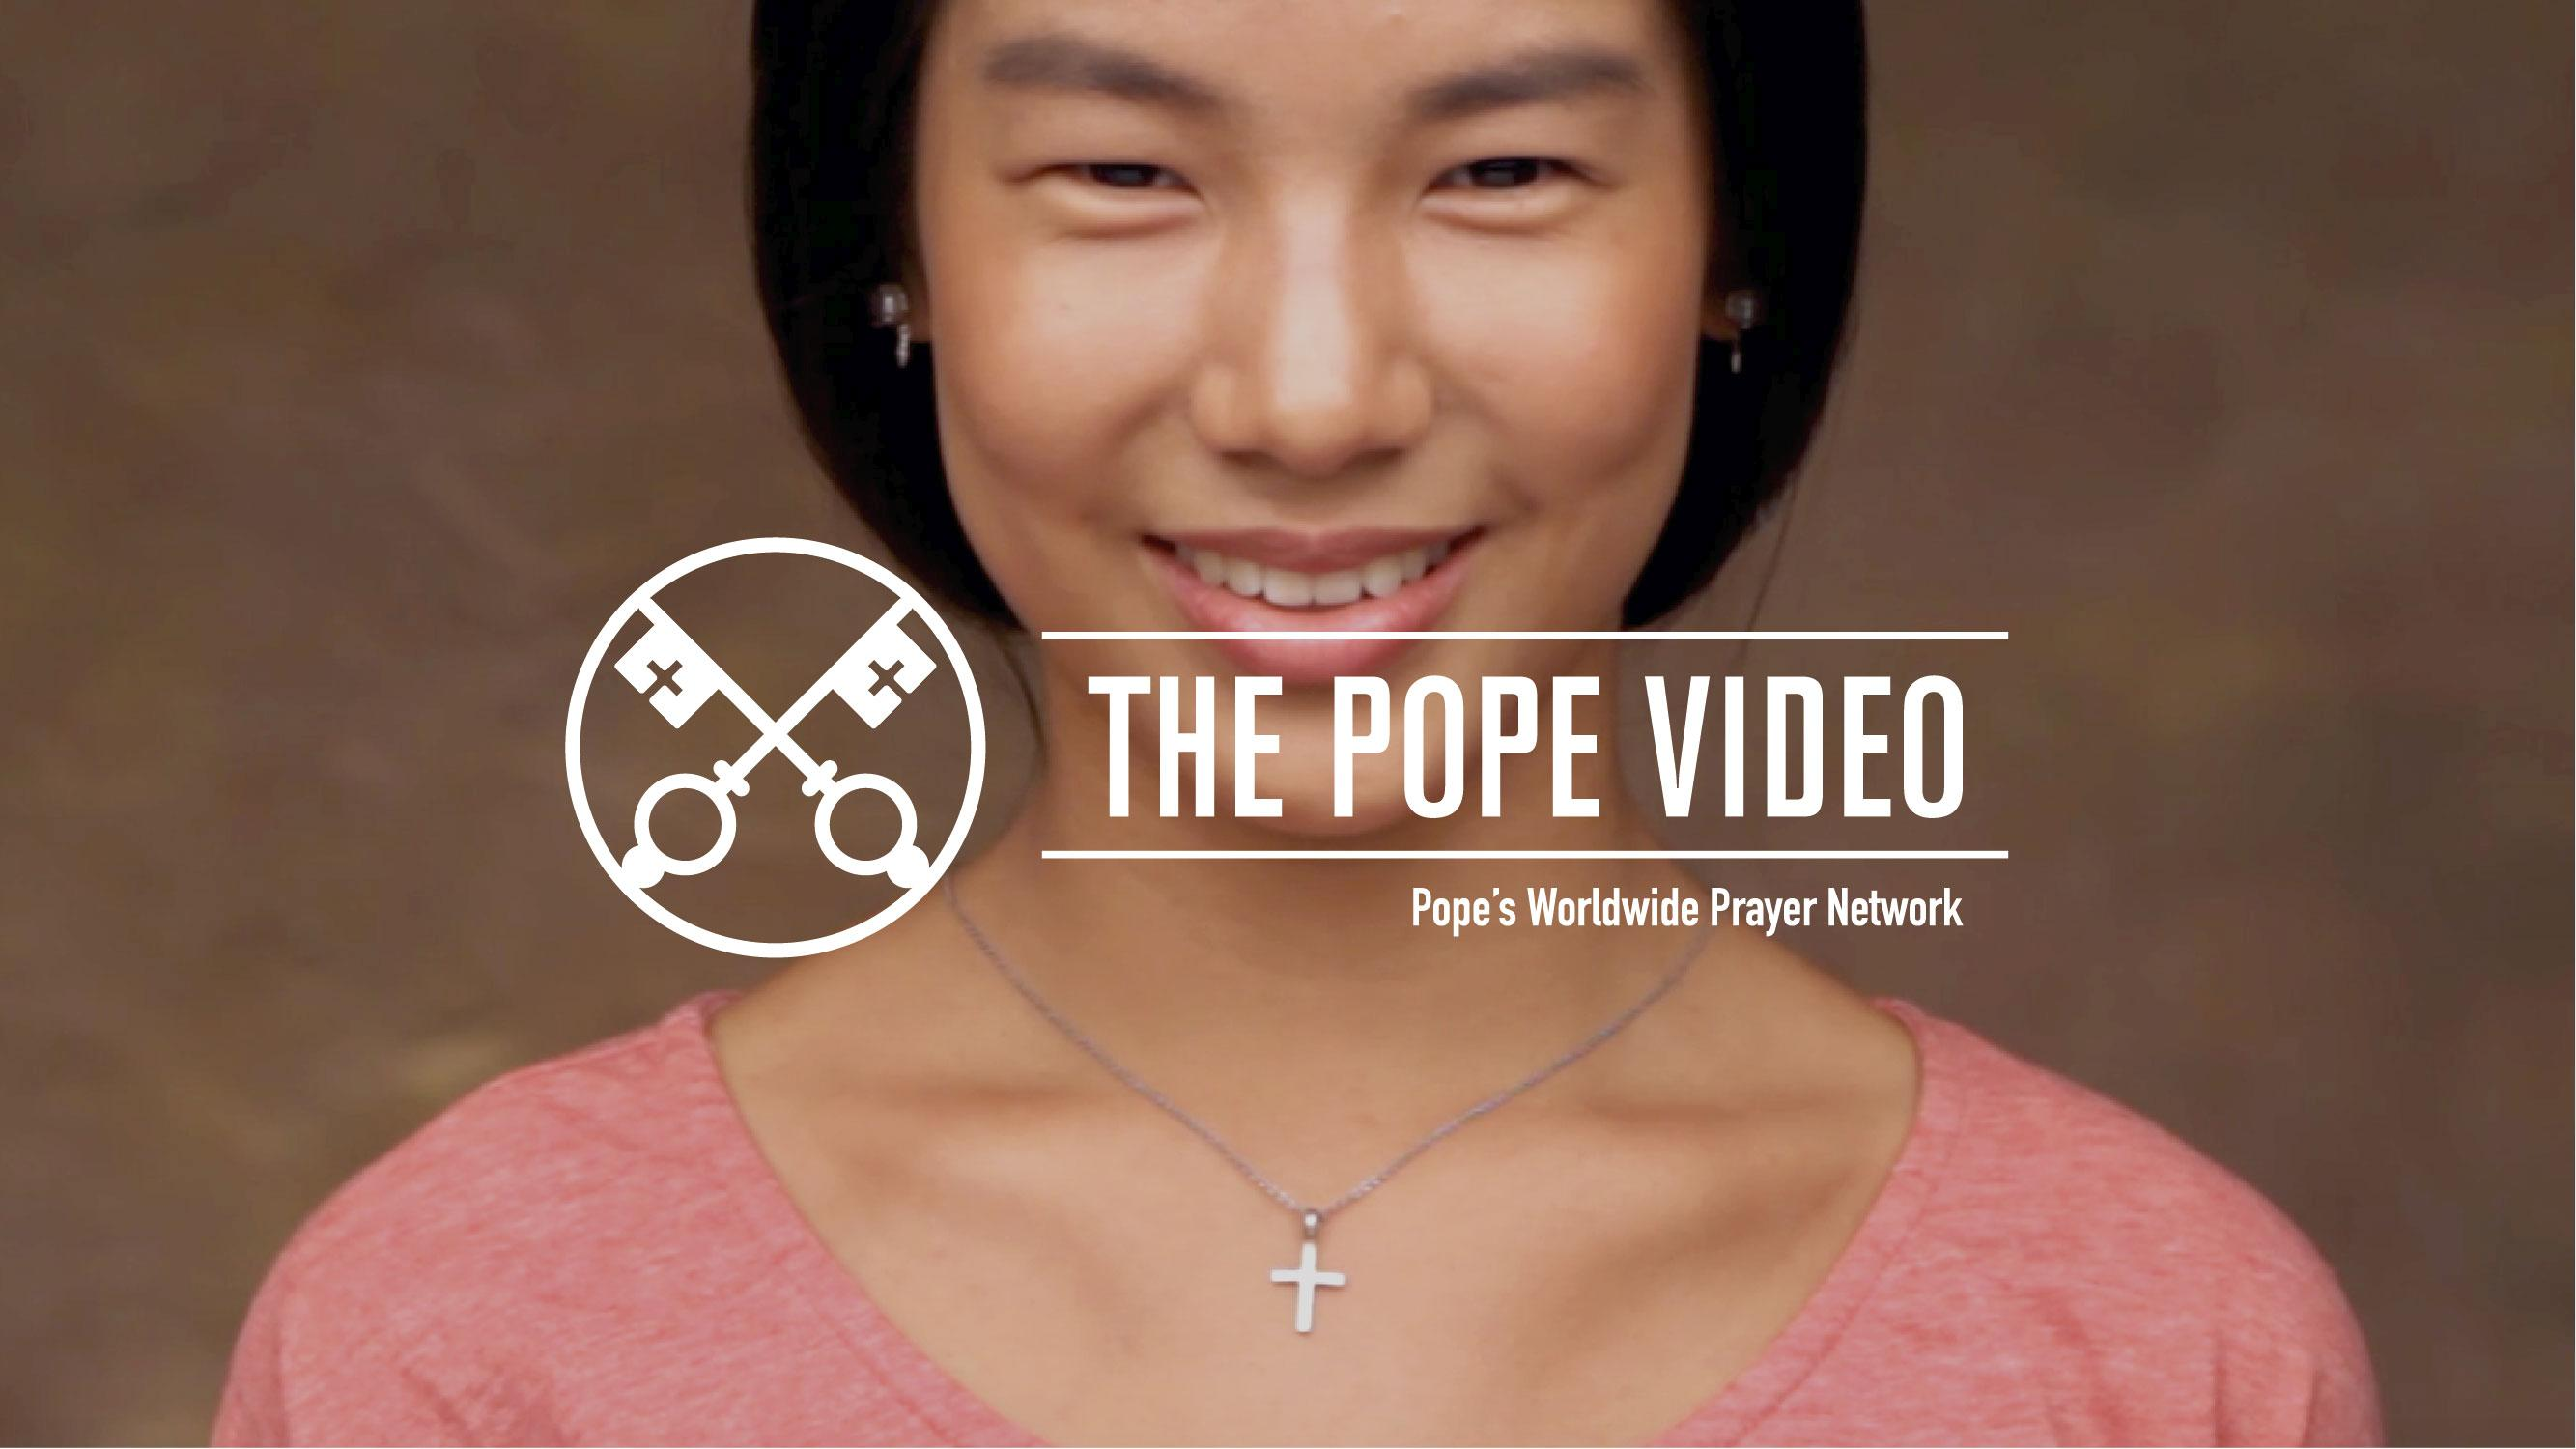 Official-Image-The-Pope-Video-11-Nov-2017-To-witness-to-the-Gospel-in-Asia-1-English